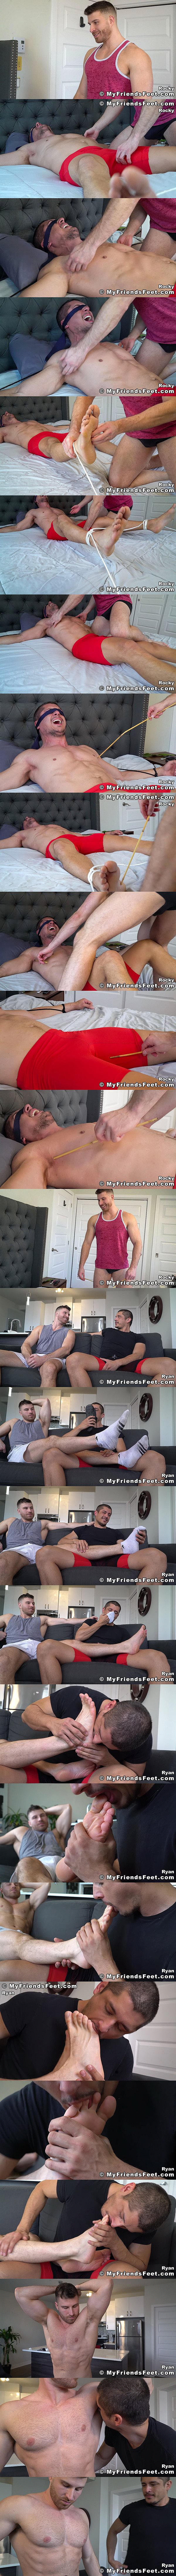 Myfriendsfeet - Rocky Vallarta firstly gets tickled by manly newcomer Ryan Ellis before he sniffs, worships and licks Ryan's sports socks and masculine bare feet 02